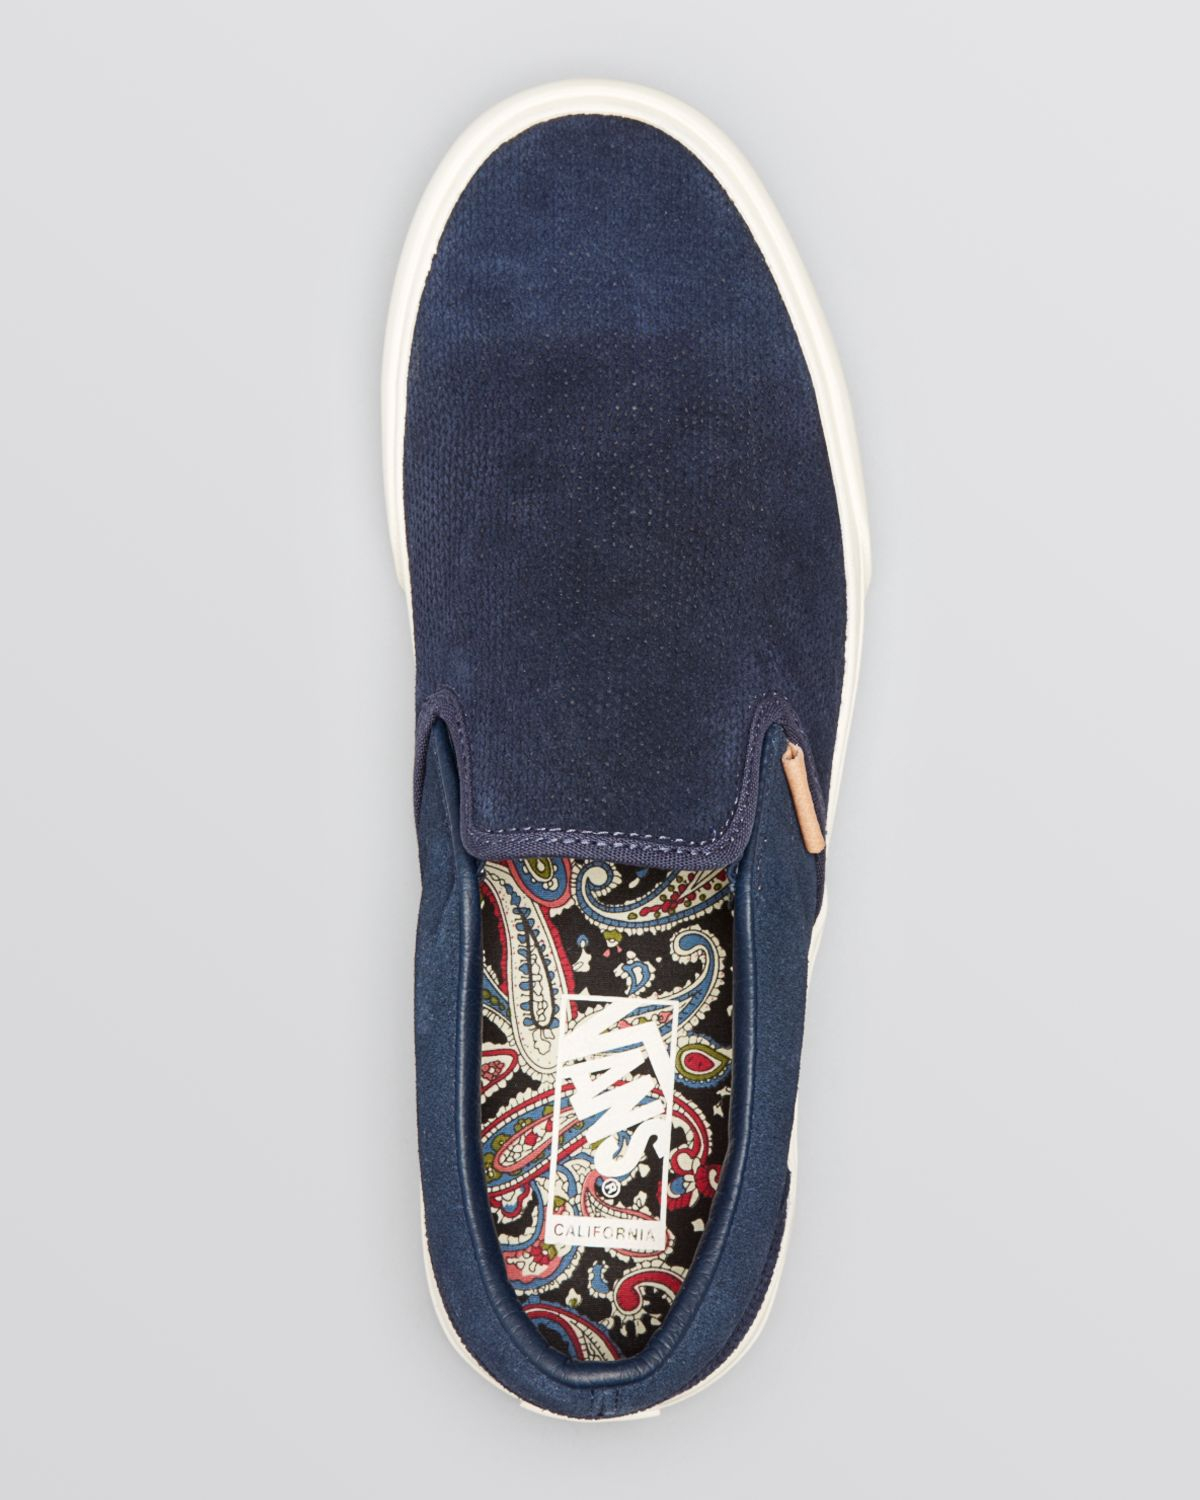 5d72698493f Lyst - Vans Classic Ca Knit Suede Slip On Sneakers in Blue for Men